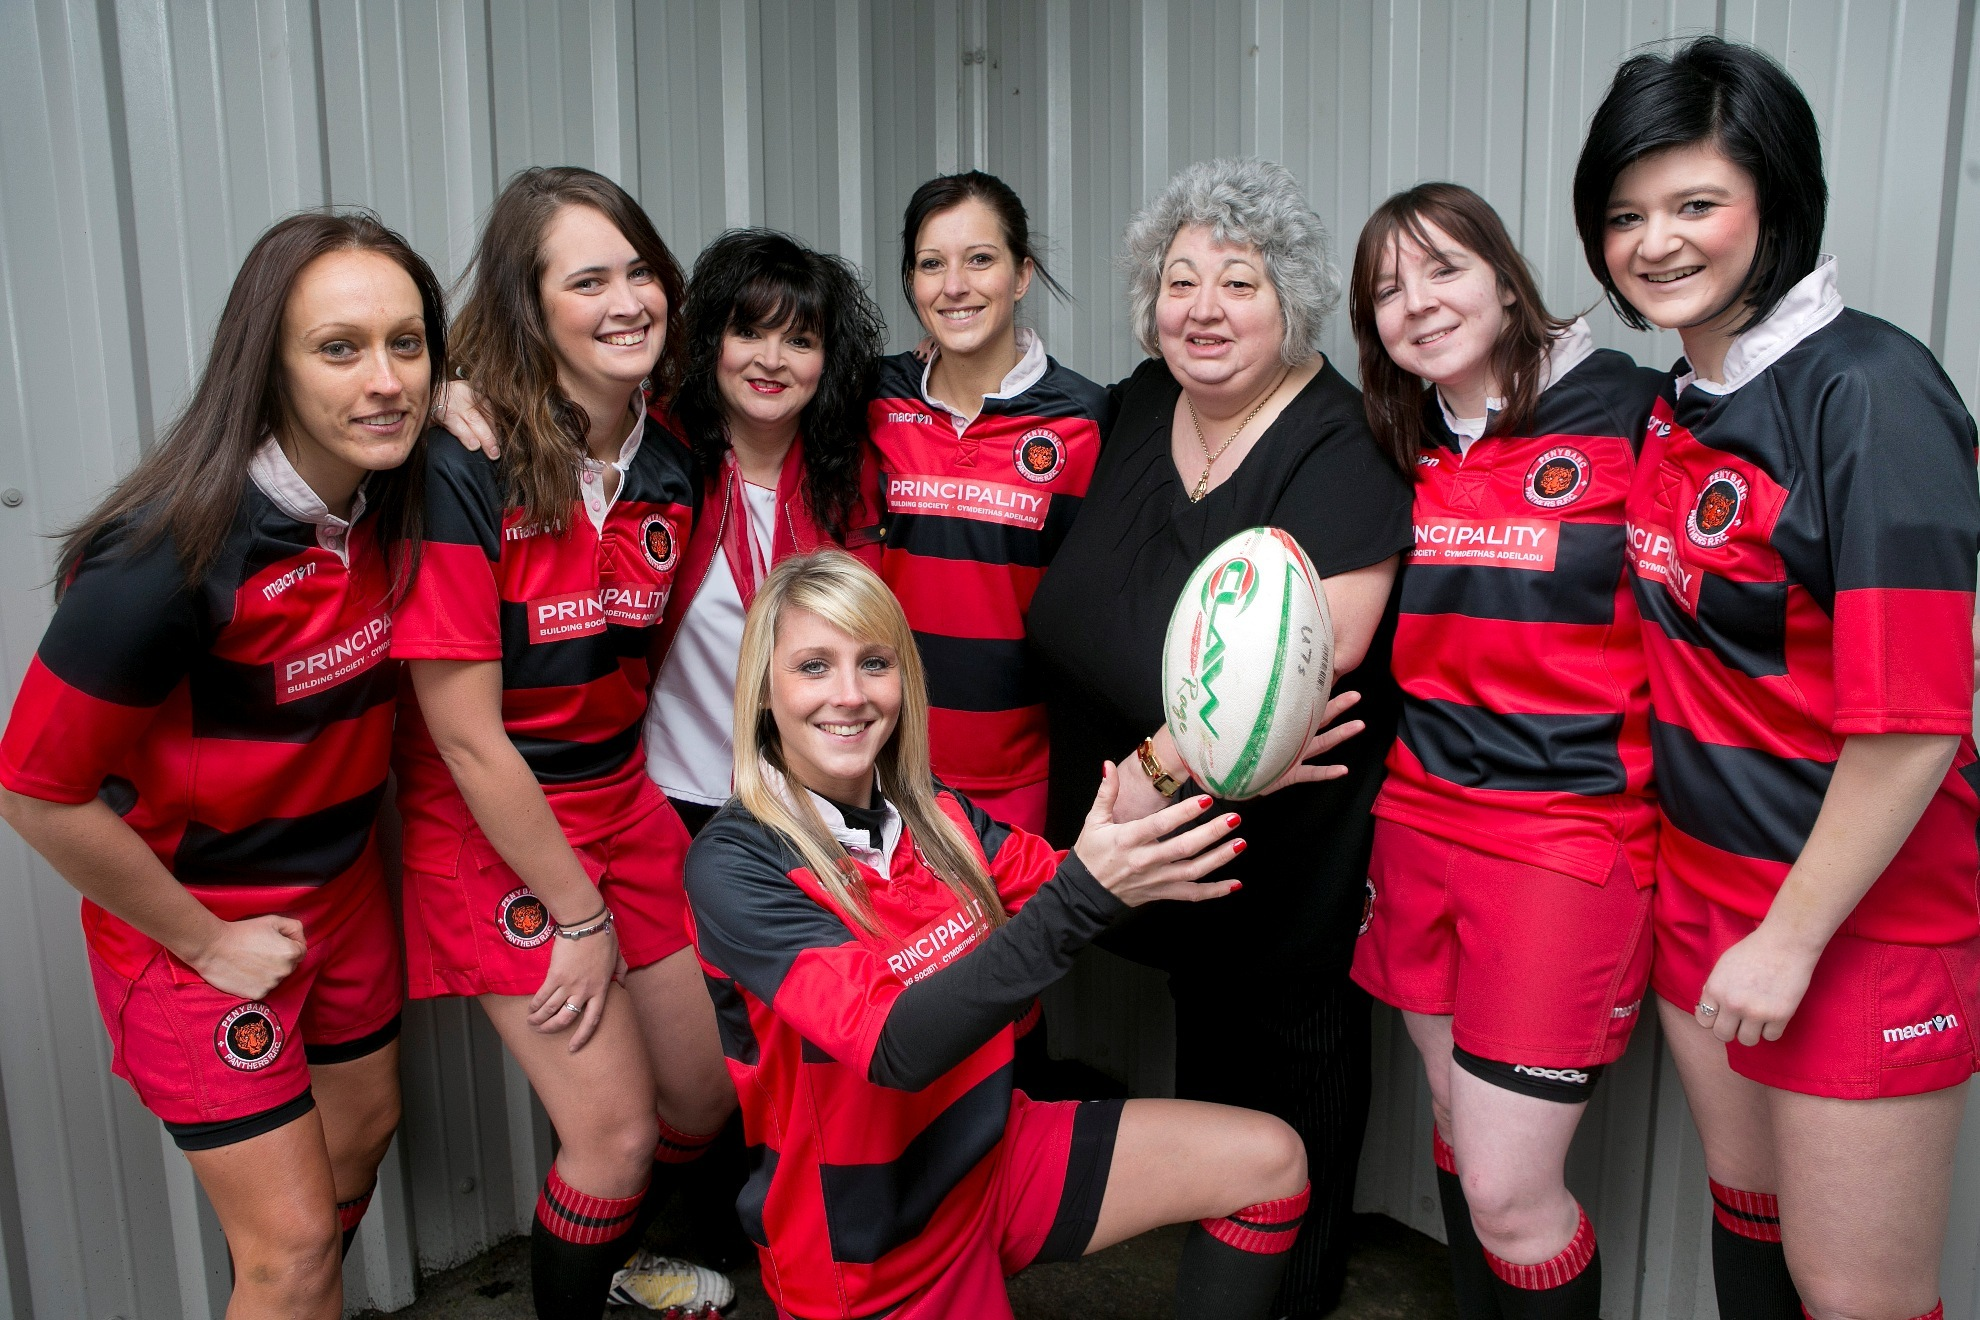 COOL CATS: Penybanc Panthers Ceri Thomas, Lowri Chapman, Gemma Davies, Amy Jenkins, Leah Pompa and Leanne Macbeth (kneeling) with Principality Building Society's Virginia Linnell and Julie Evans.